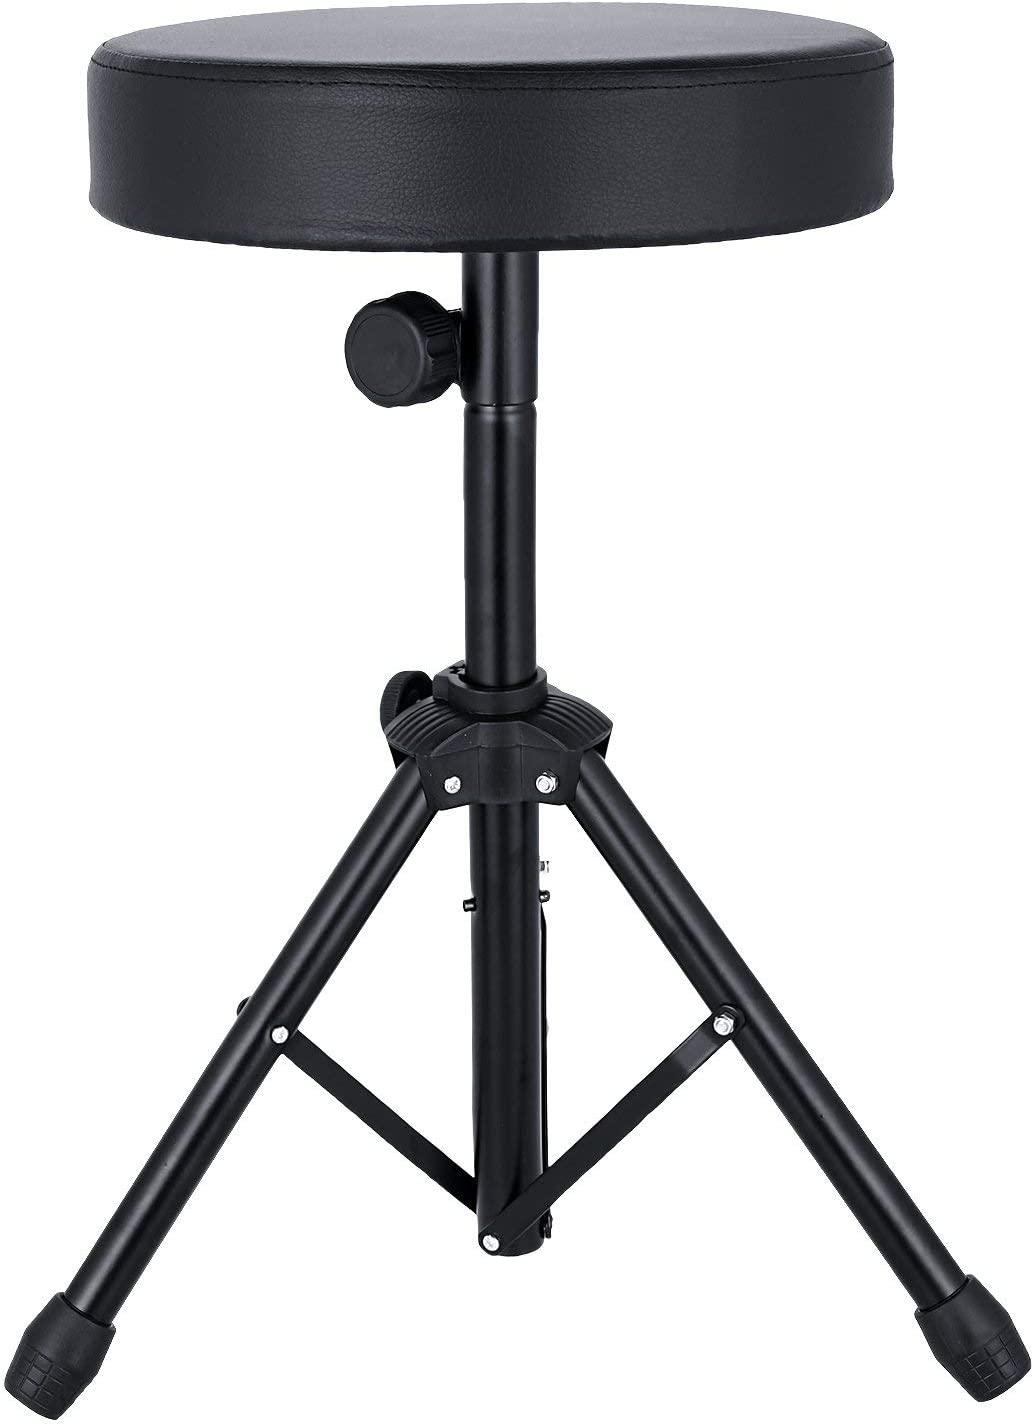 Sailnovo Universal Drum Throne,Padded Drum Seat Rotatable drumming Stools with Anti-Slip Feet for Adults and Kids Black